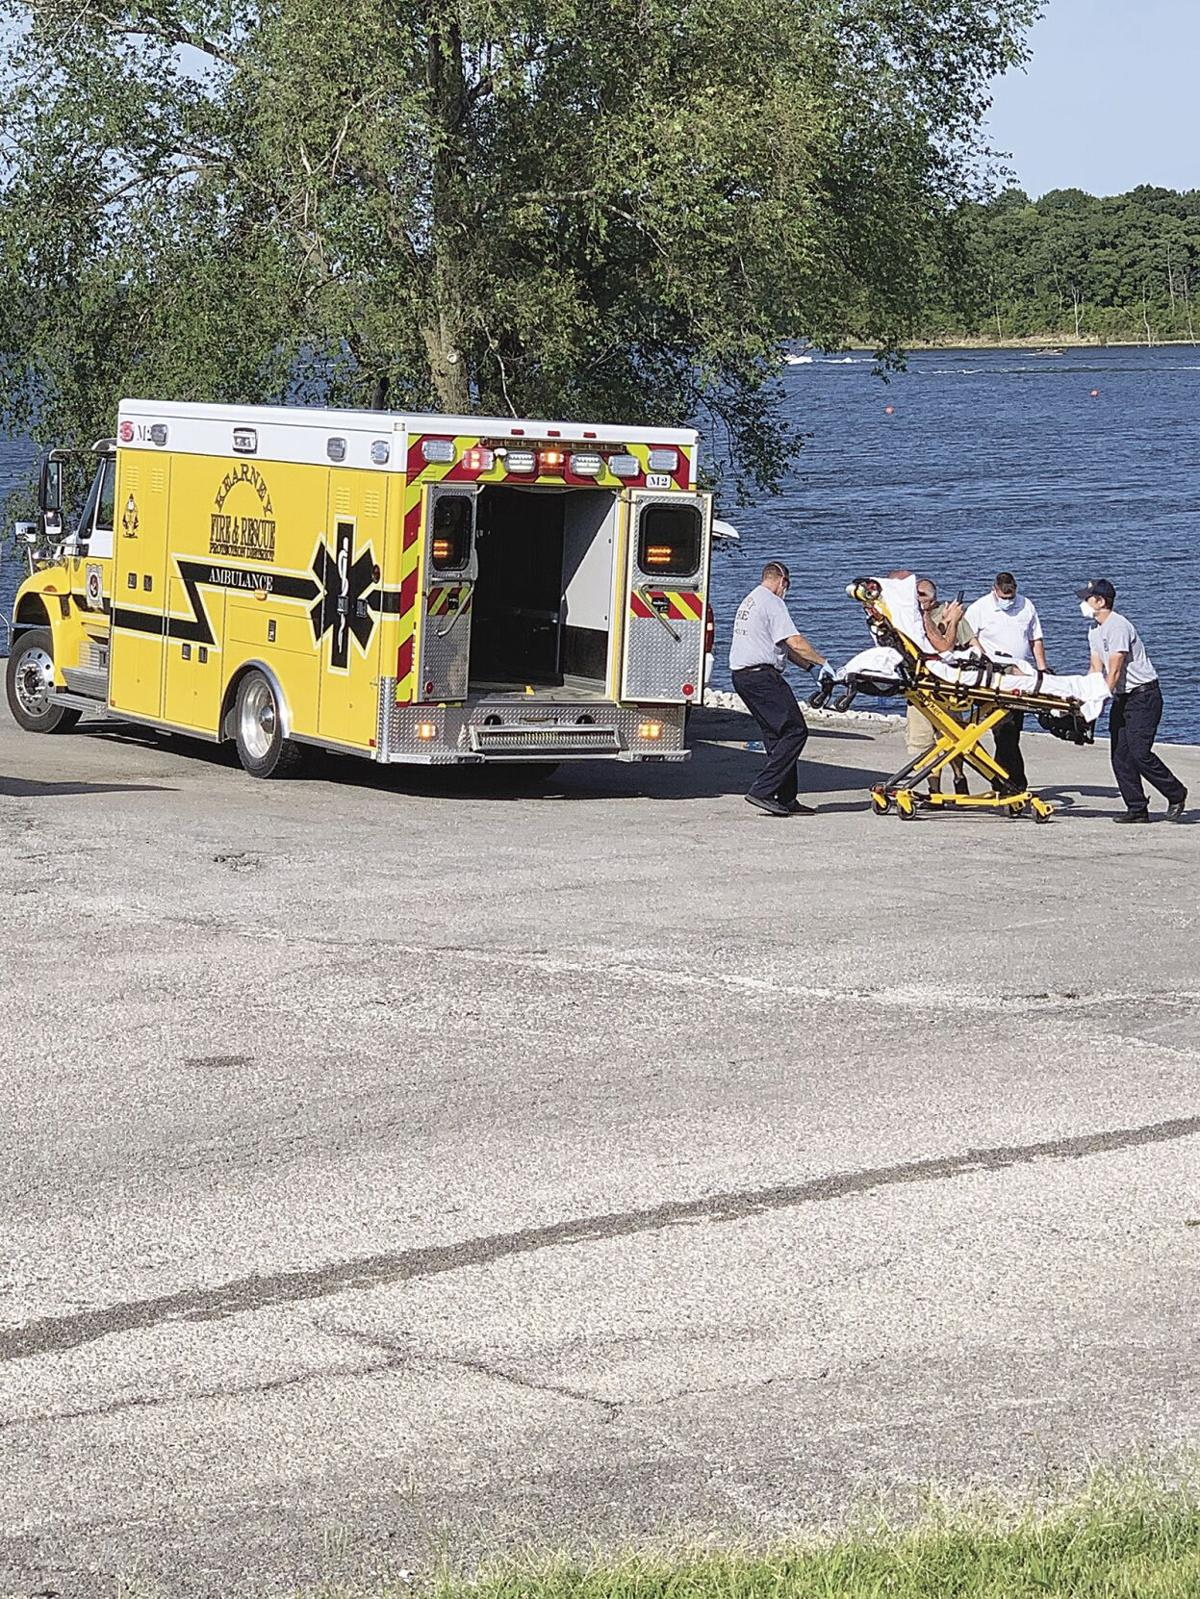 Smithville Lake boat accident sends 10 to hospital